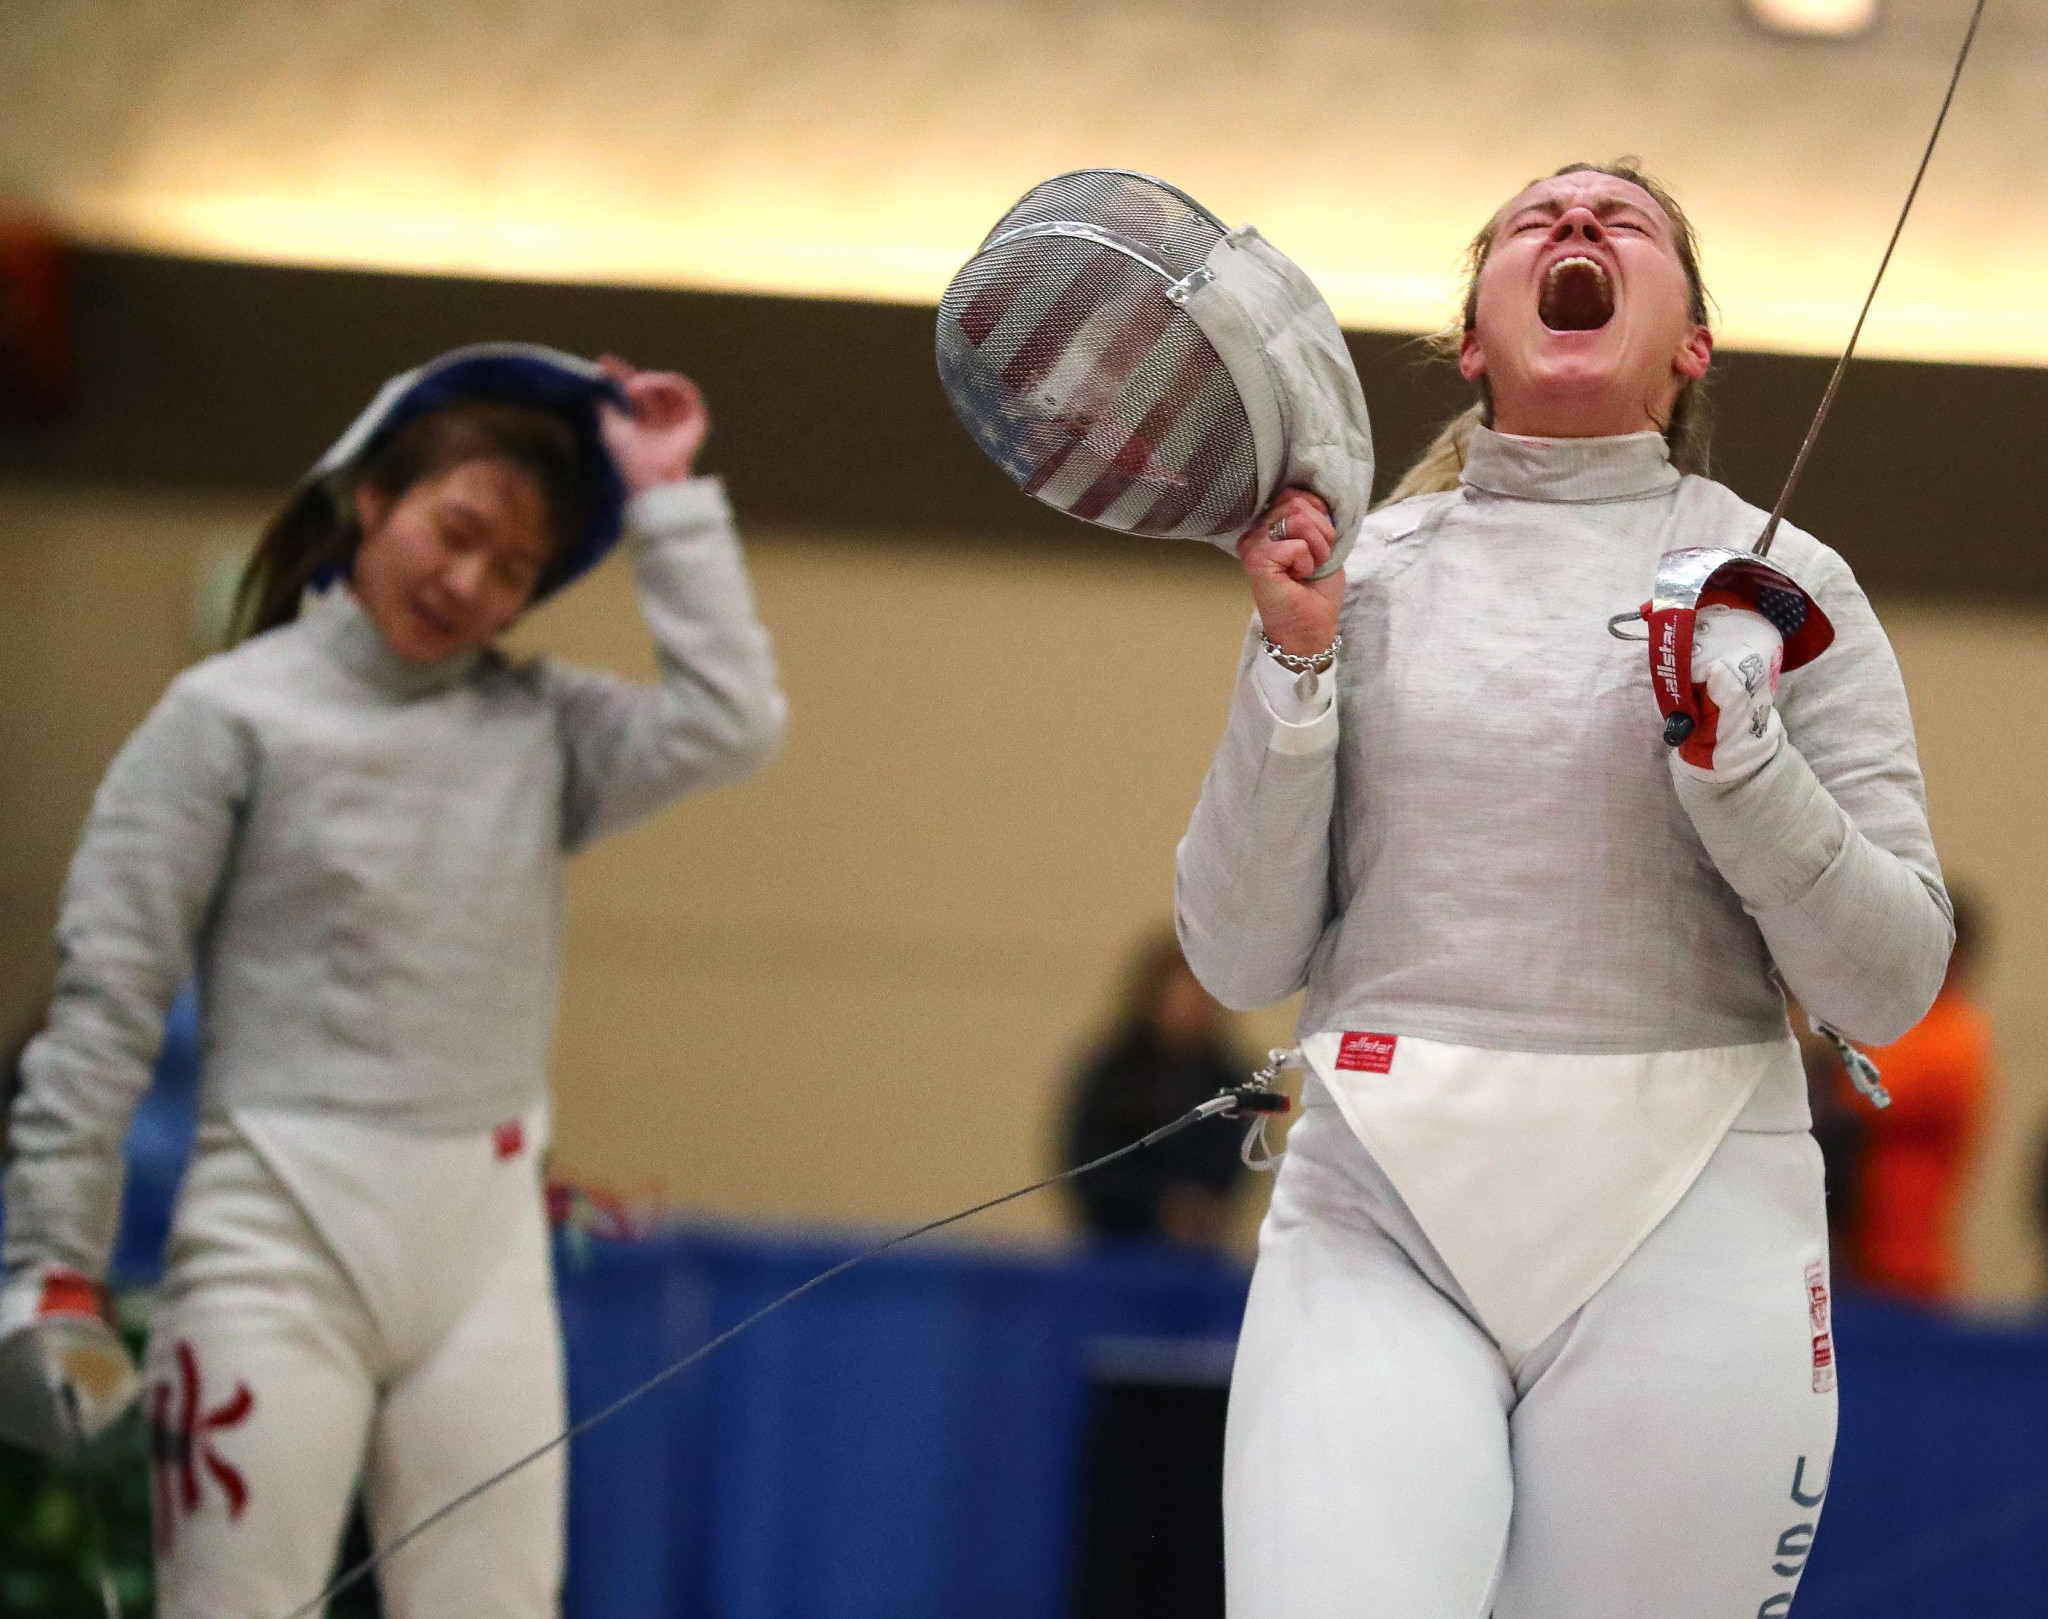 Dagmara Wozniak had a profitable weekend at the Baltimore Sabre World Cup where she finished fifth in the individual competition and helped the home side to finish fifth in the team event ©Getty Images